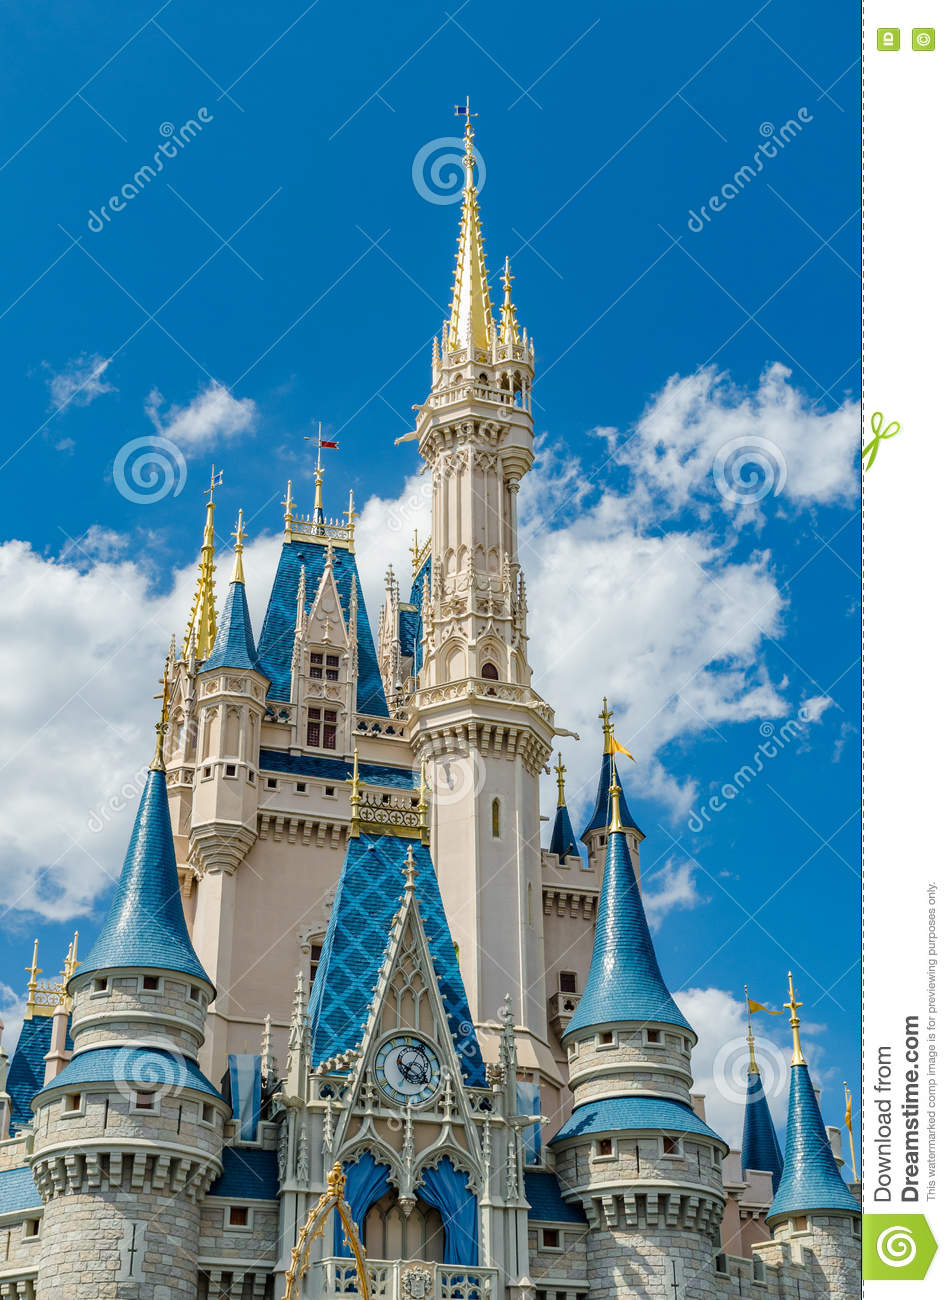 Disneyland Florida Disney Magic Kingdom Castle Editorial Photography Image Of Down